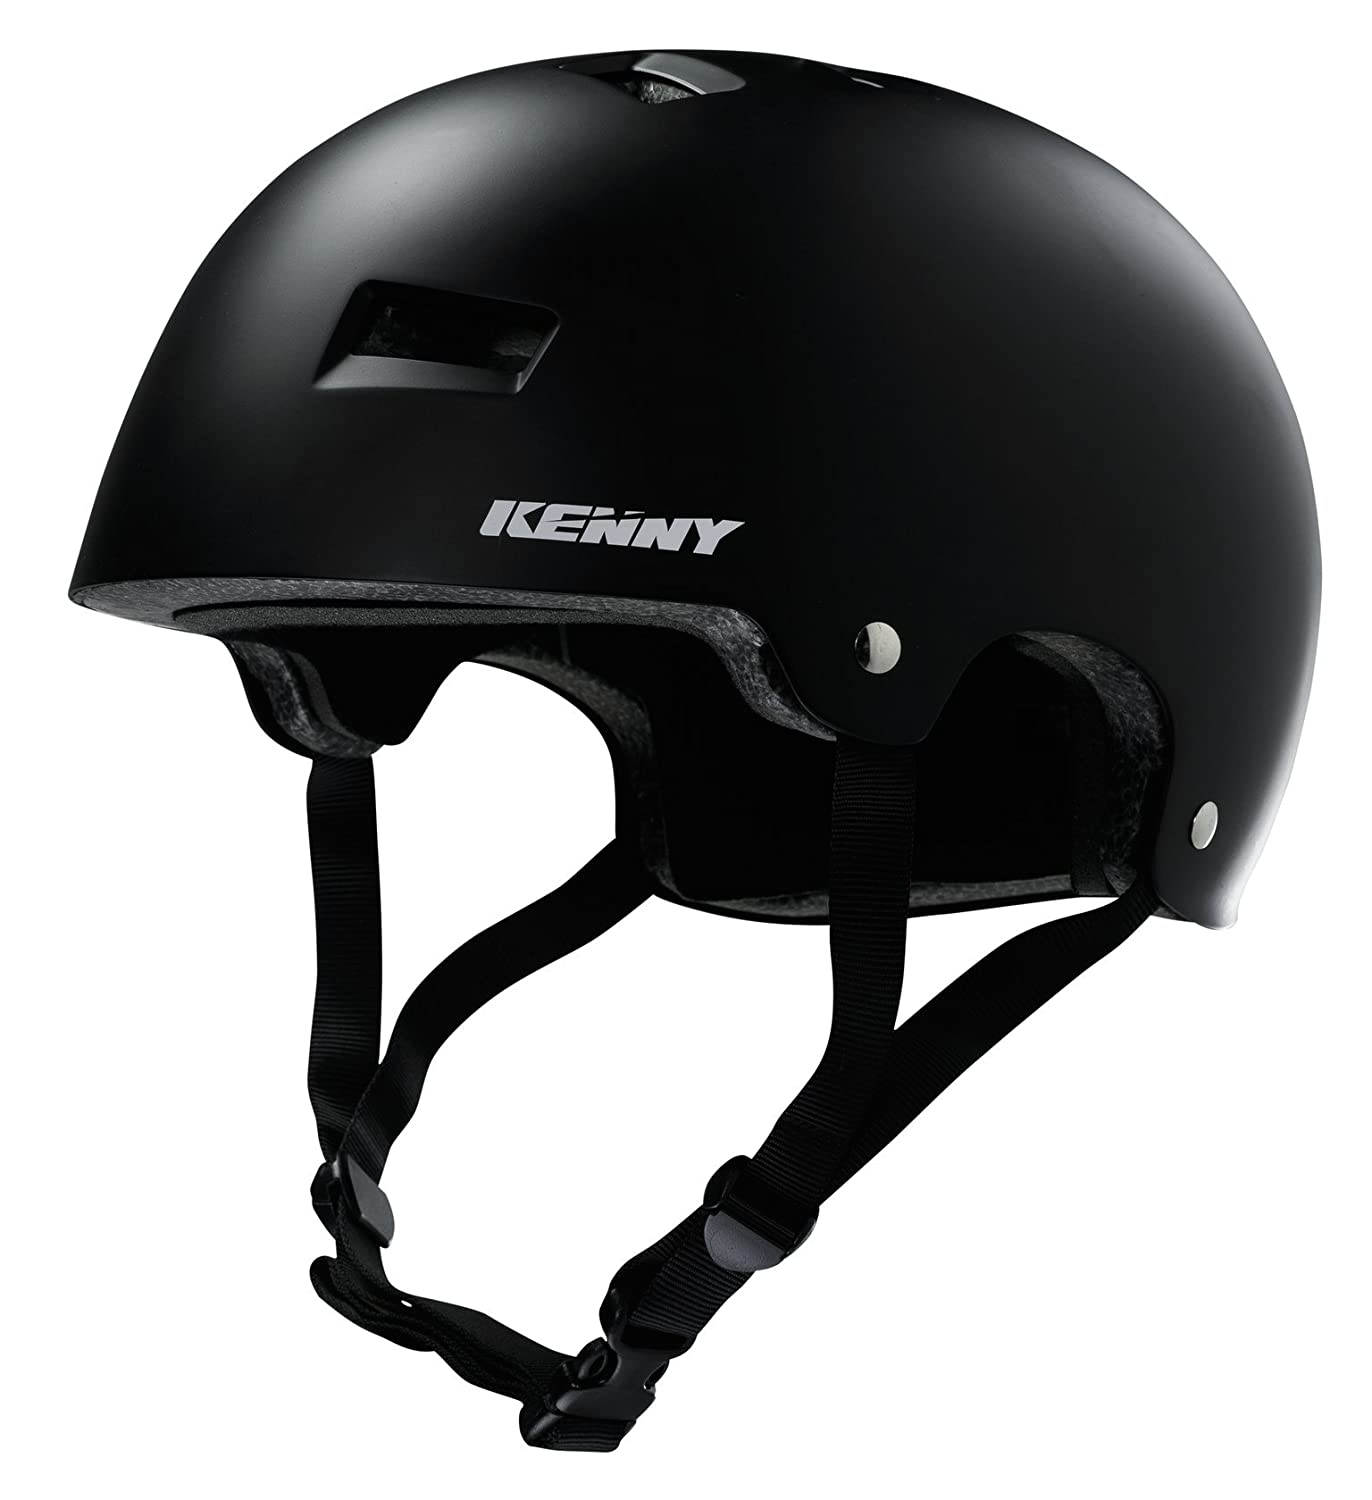 Kenny Equipement Bowl Casco Unisex, Negro: Amazon.es: Deportes y aire libre